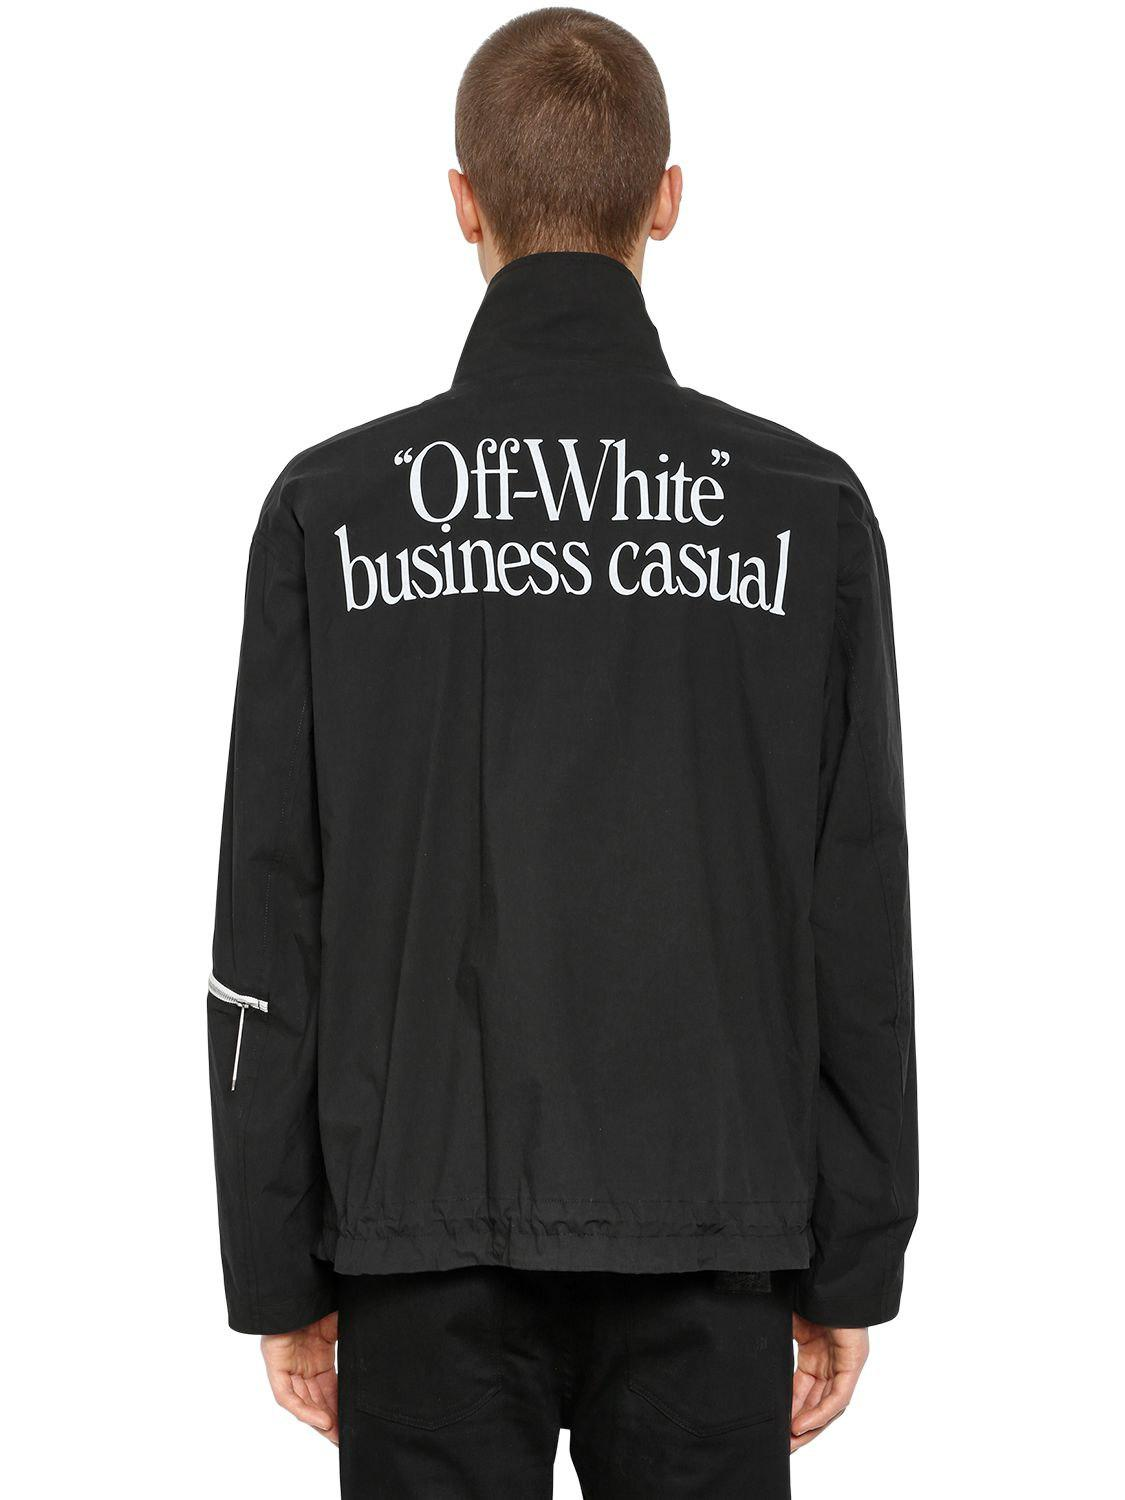 394762bb7b15 Lyst - Off-White c o Virgil Abloh Business Casual Zip Lightweight ...